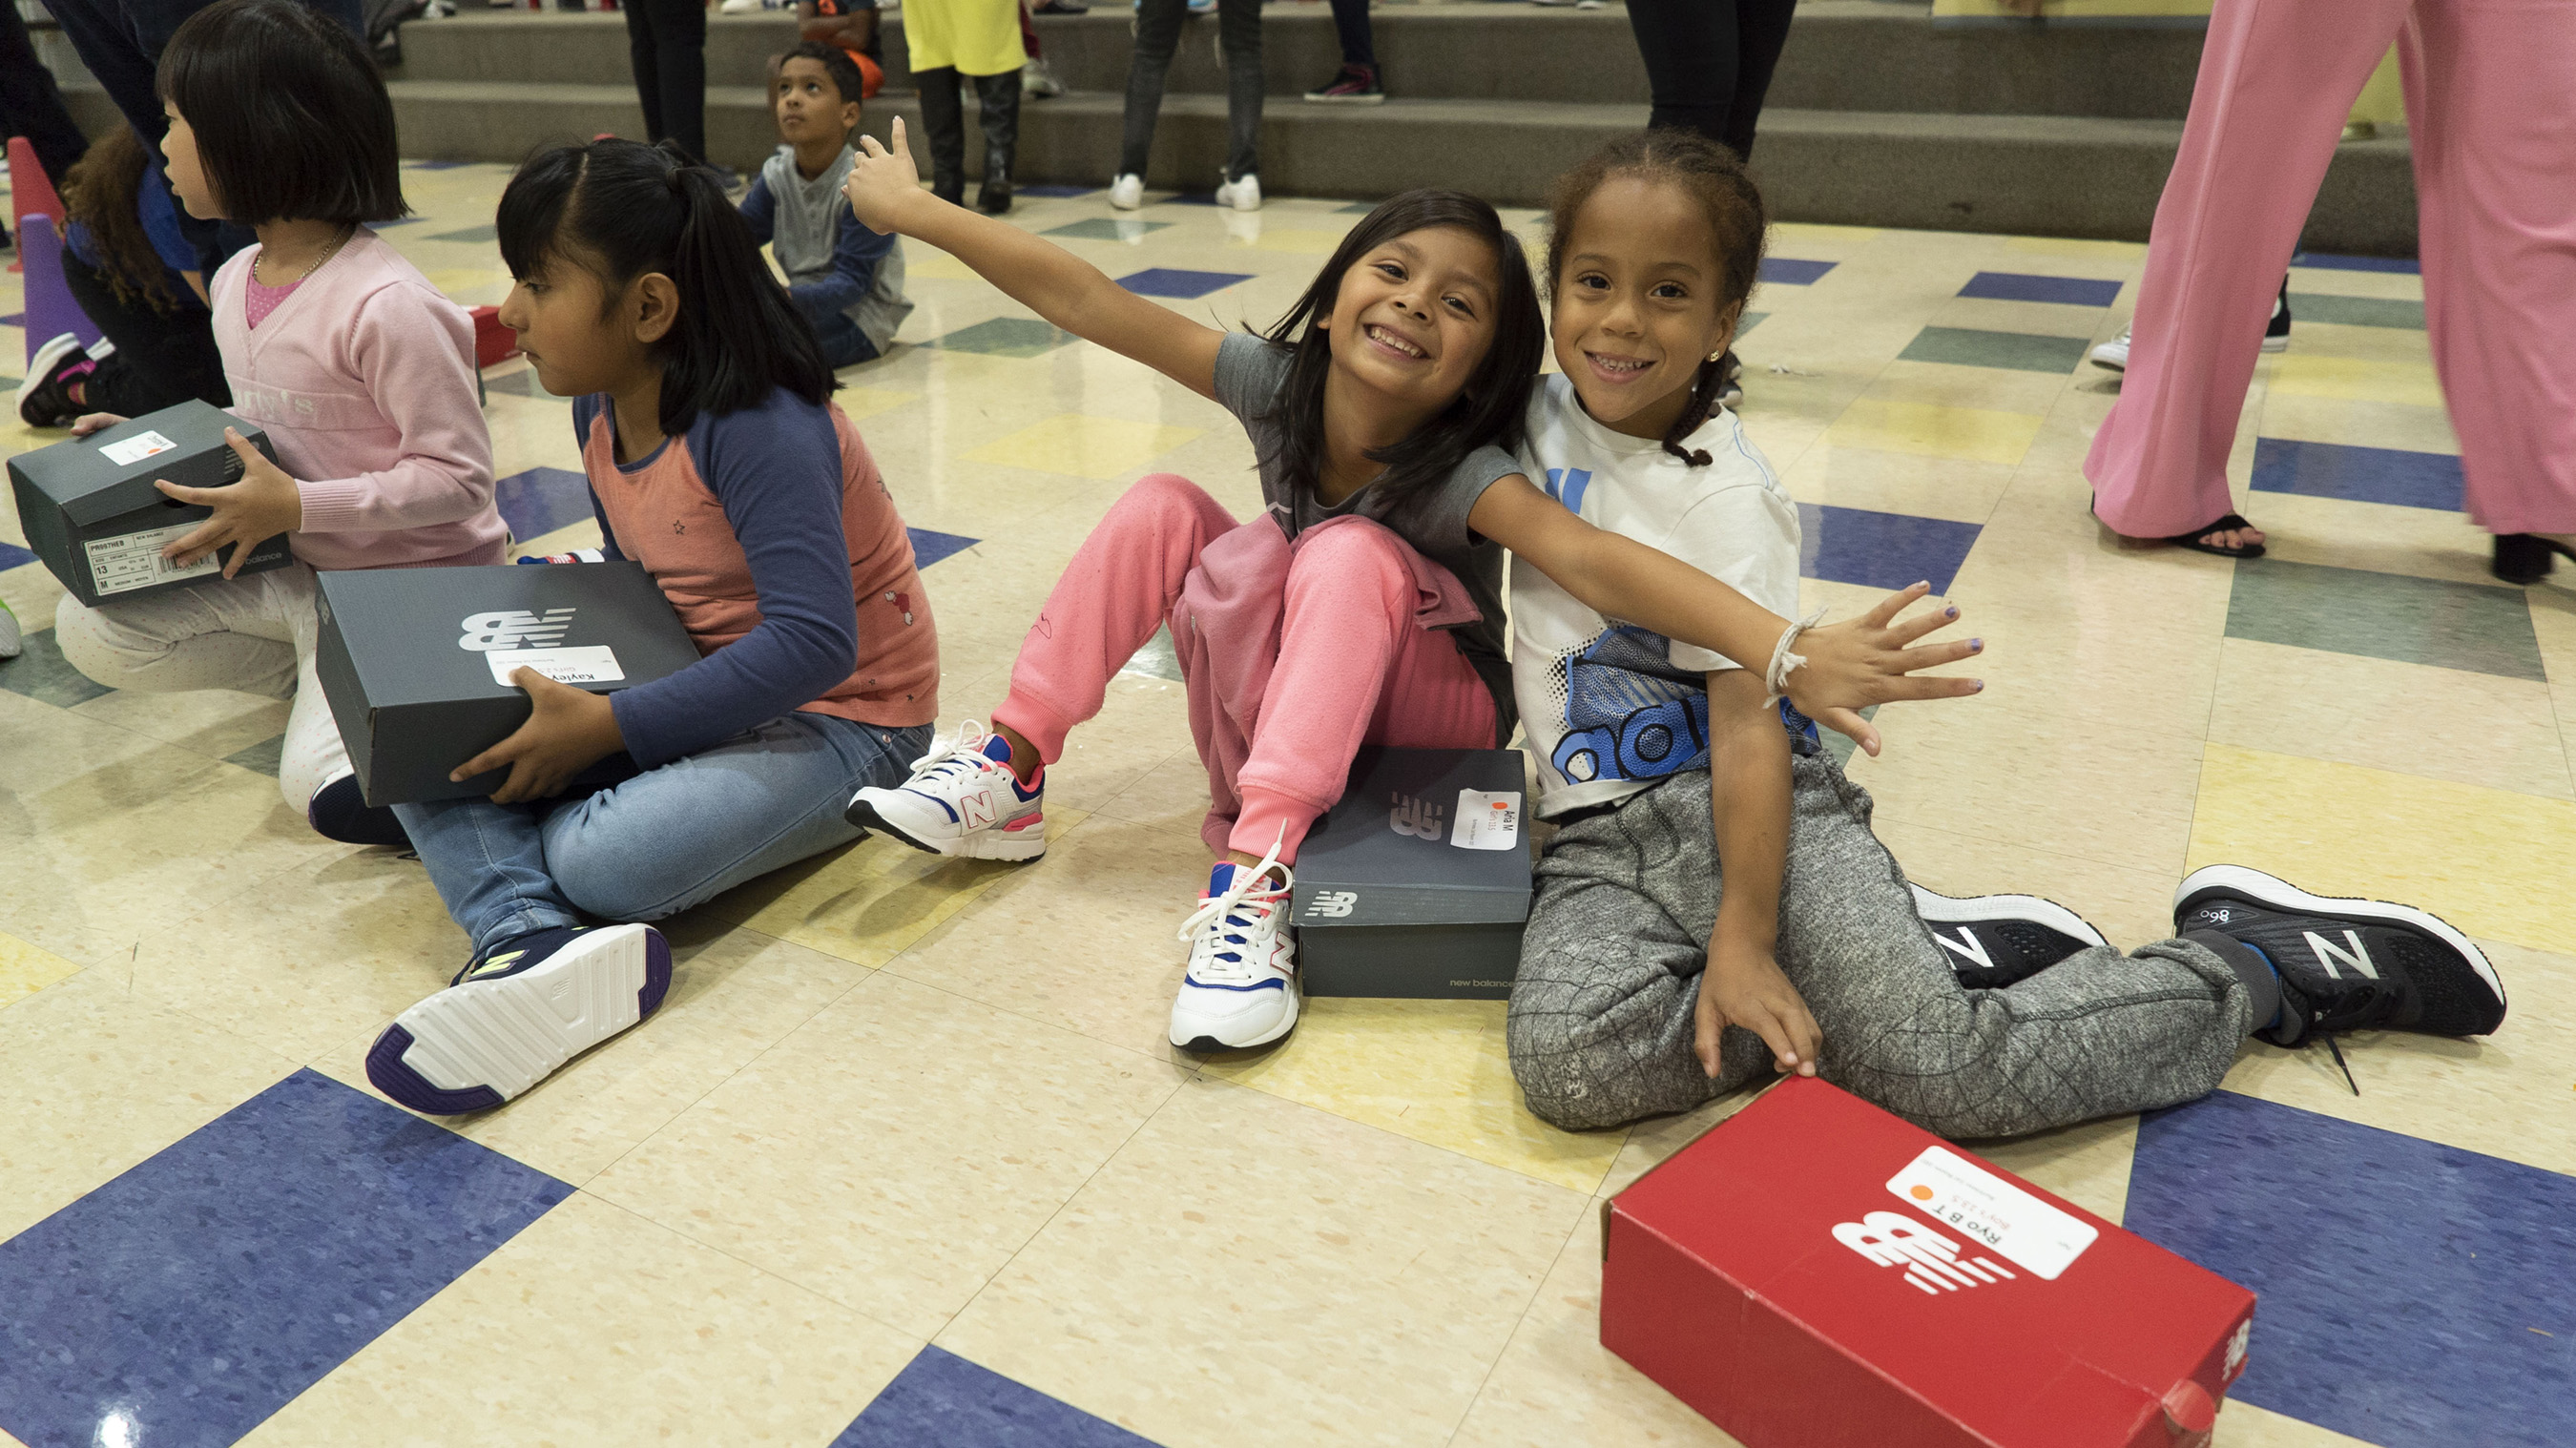 Kids at schools in 2019 are excited about their brand-new, properly-fitting shoes donated by Nordstrom in 2019.